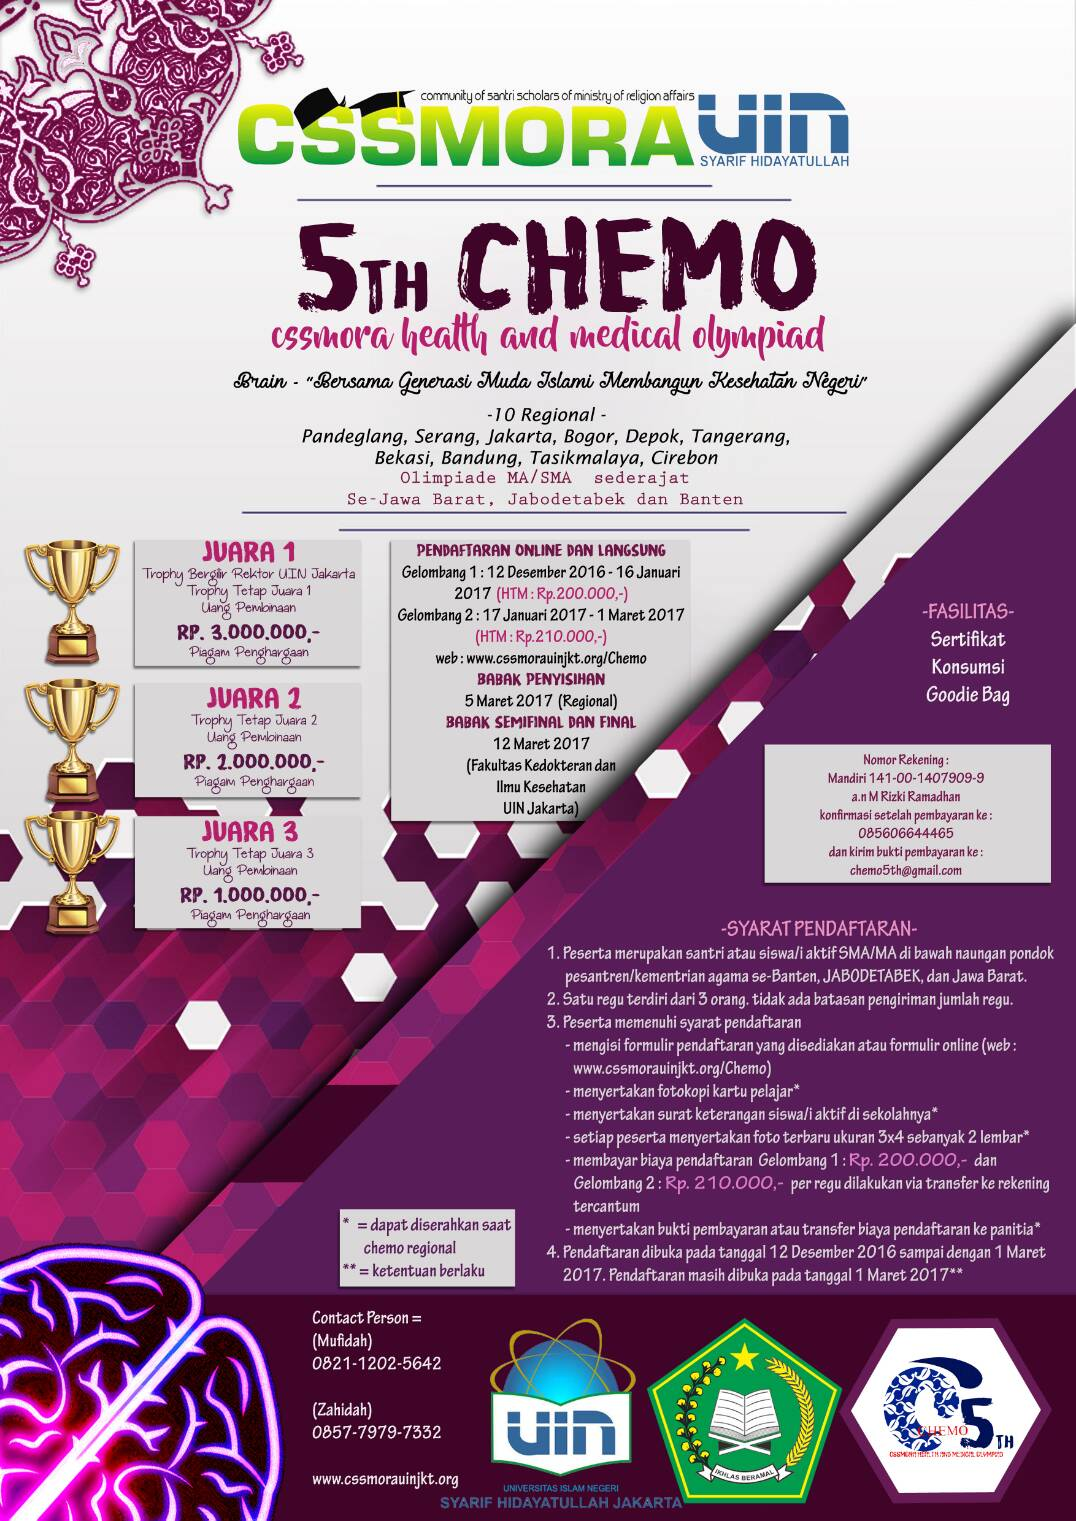 5th CHEMO: Cssmora Health and Medical Olympiad - UIN, Maret 2017